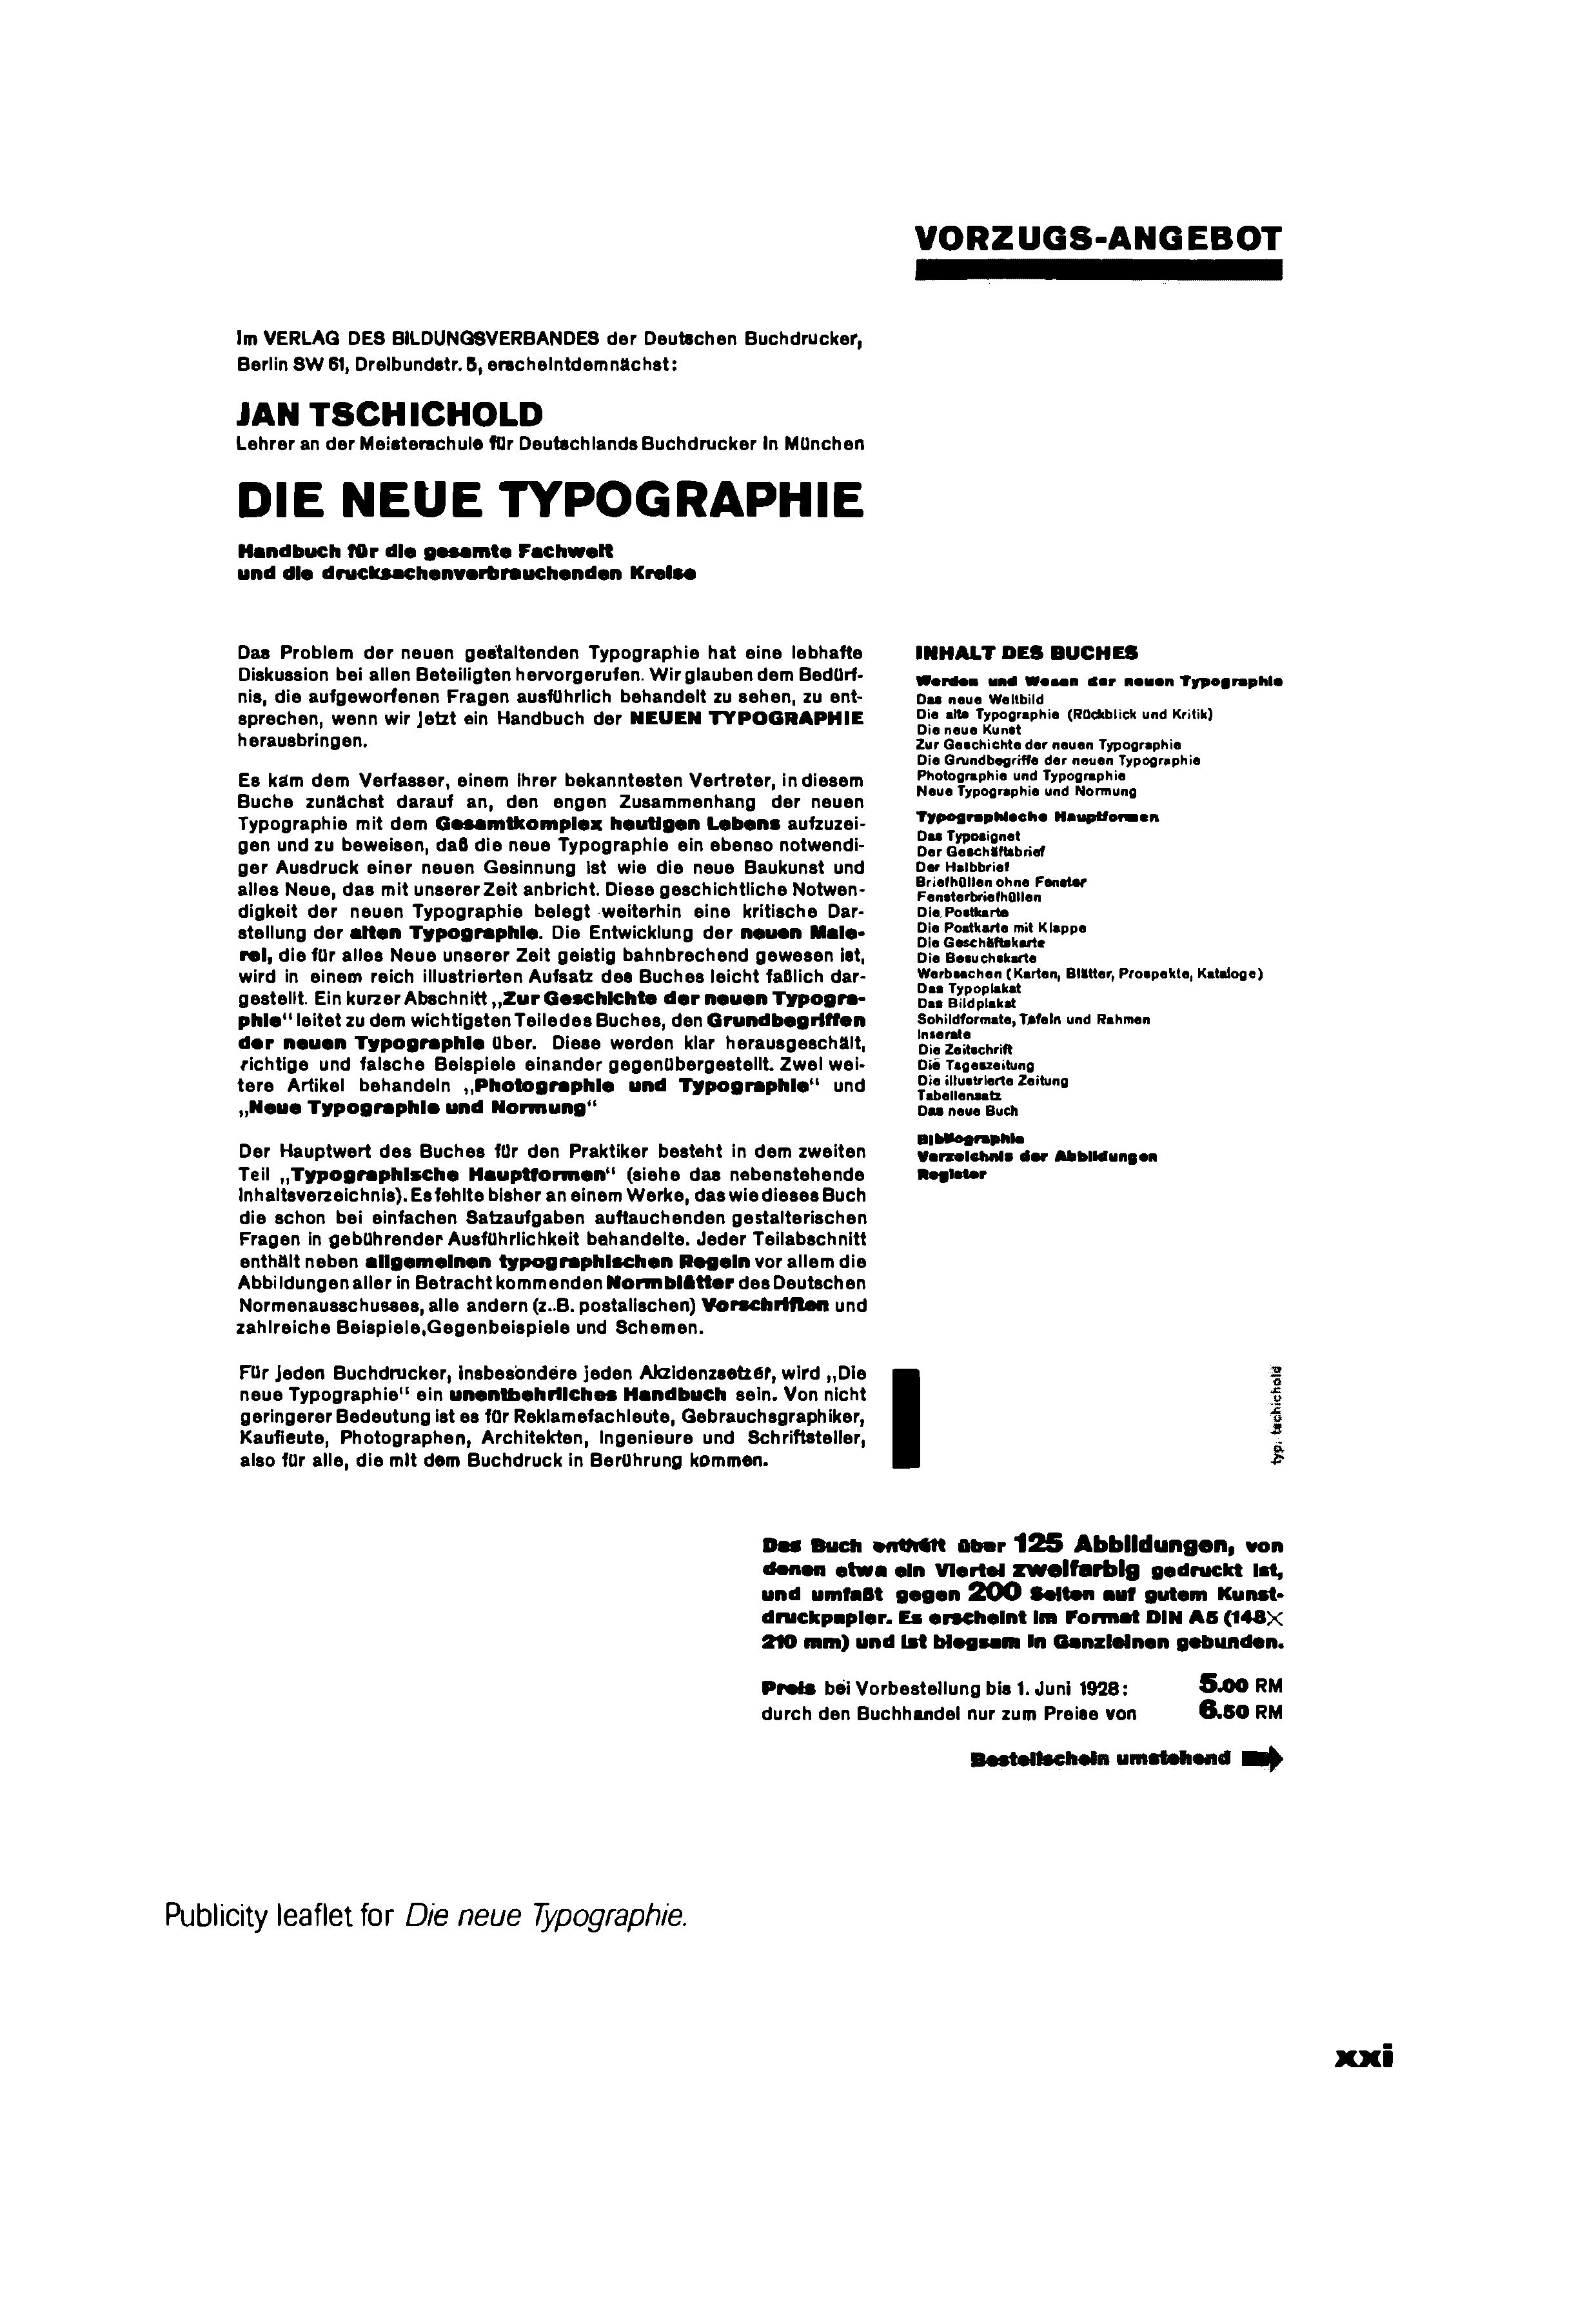 jan-tschichold-the-new-typography-1928_page_021